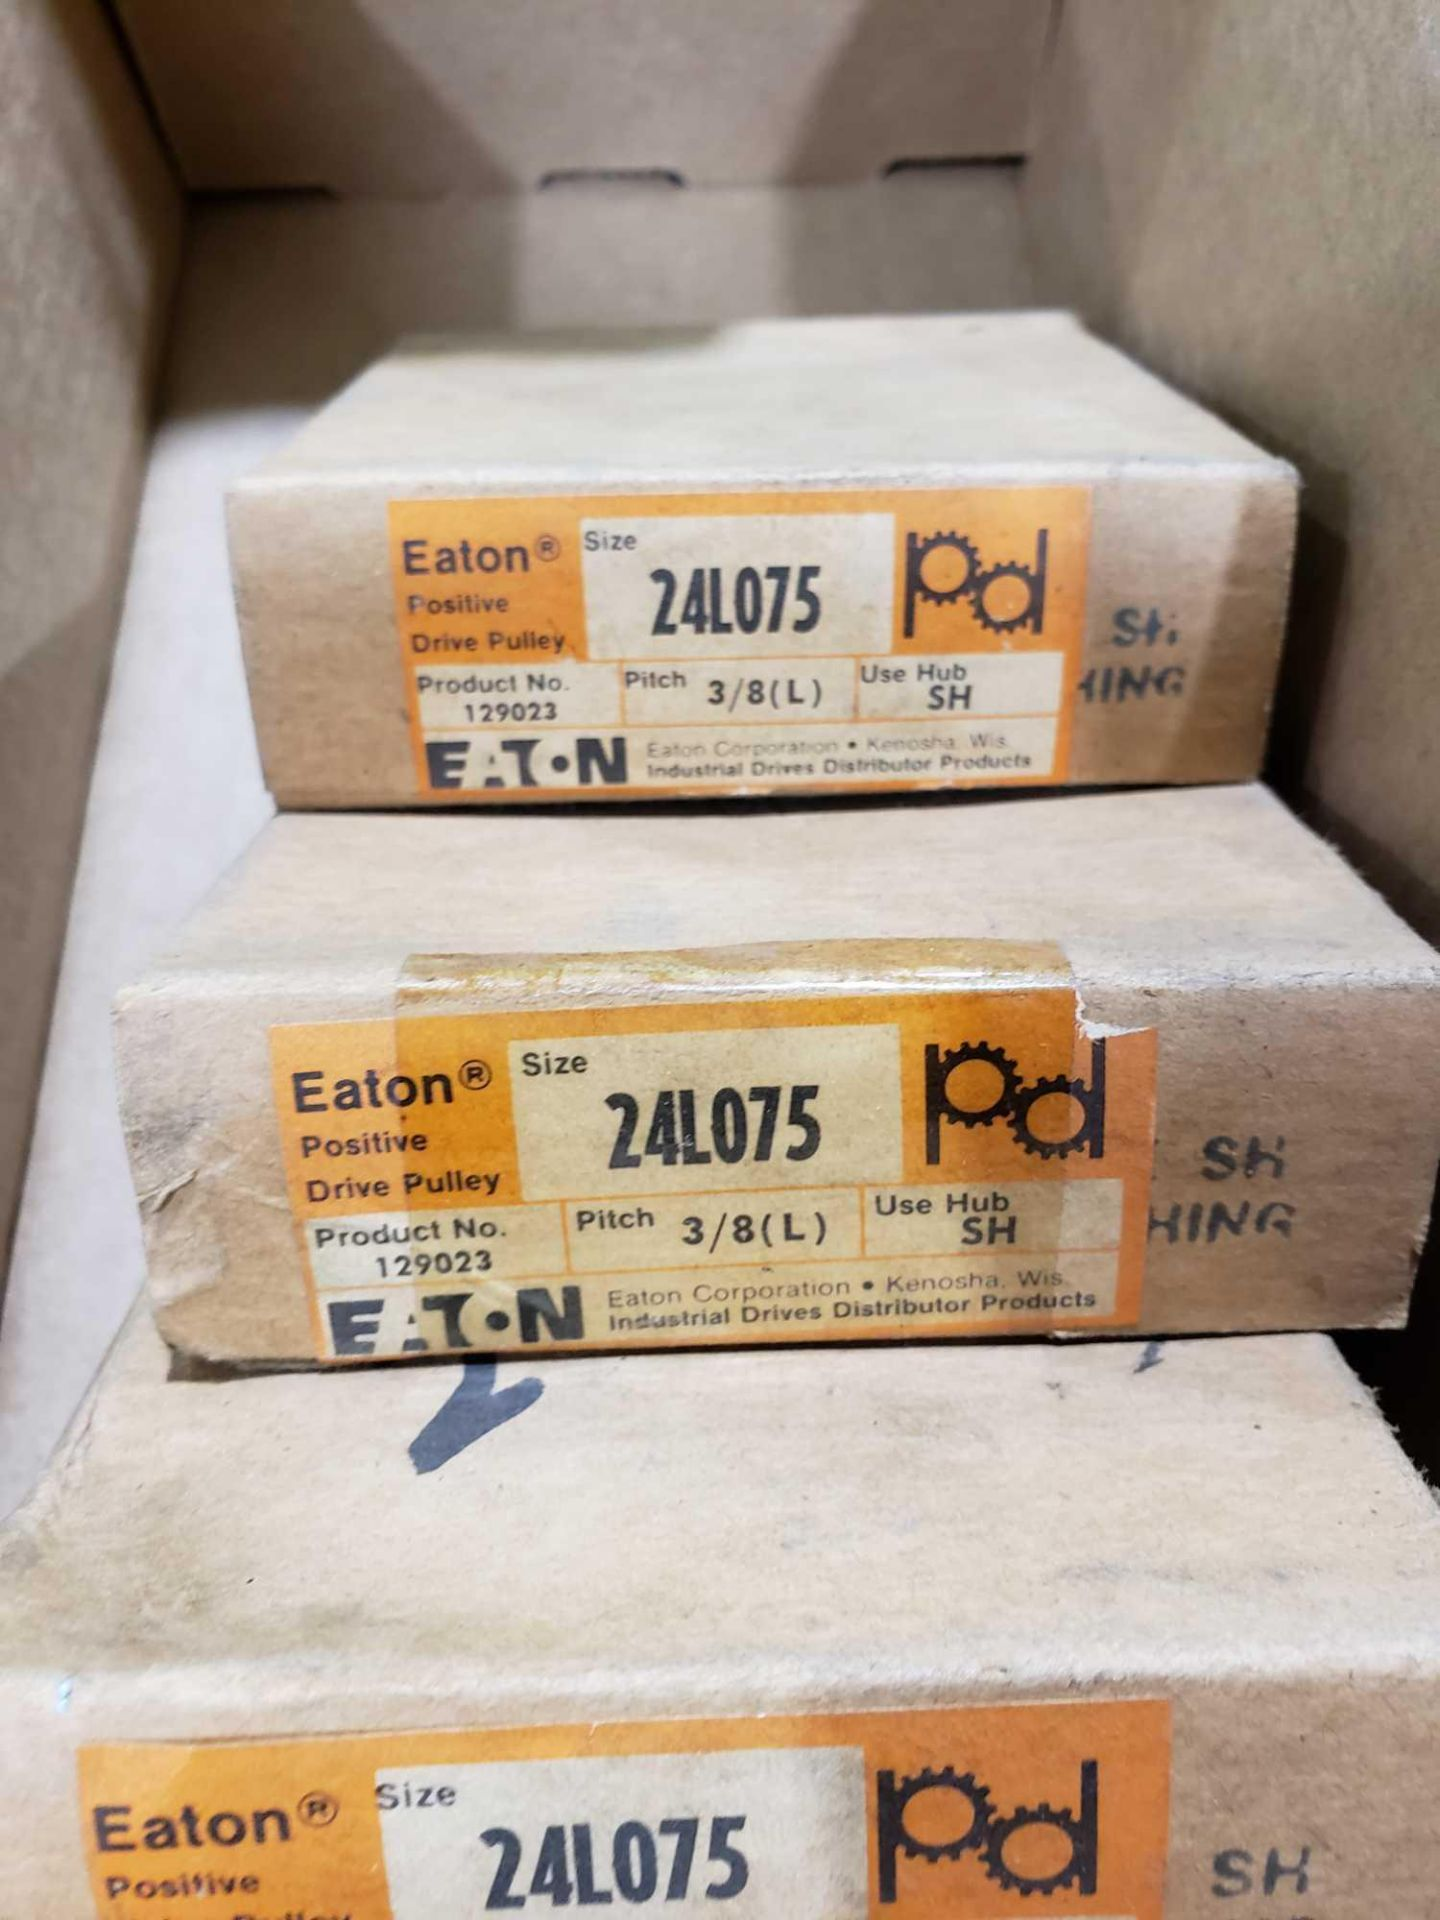 Lot 14 - Qty 4 - Eaton part number 24L075-SDS pulley. New in box.